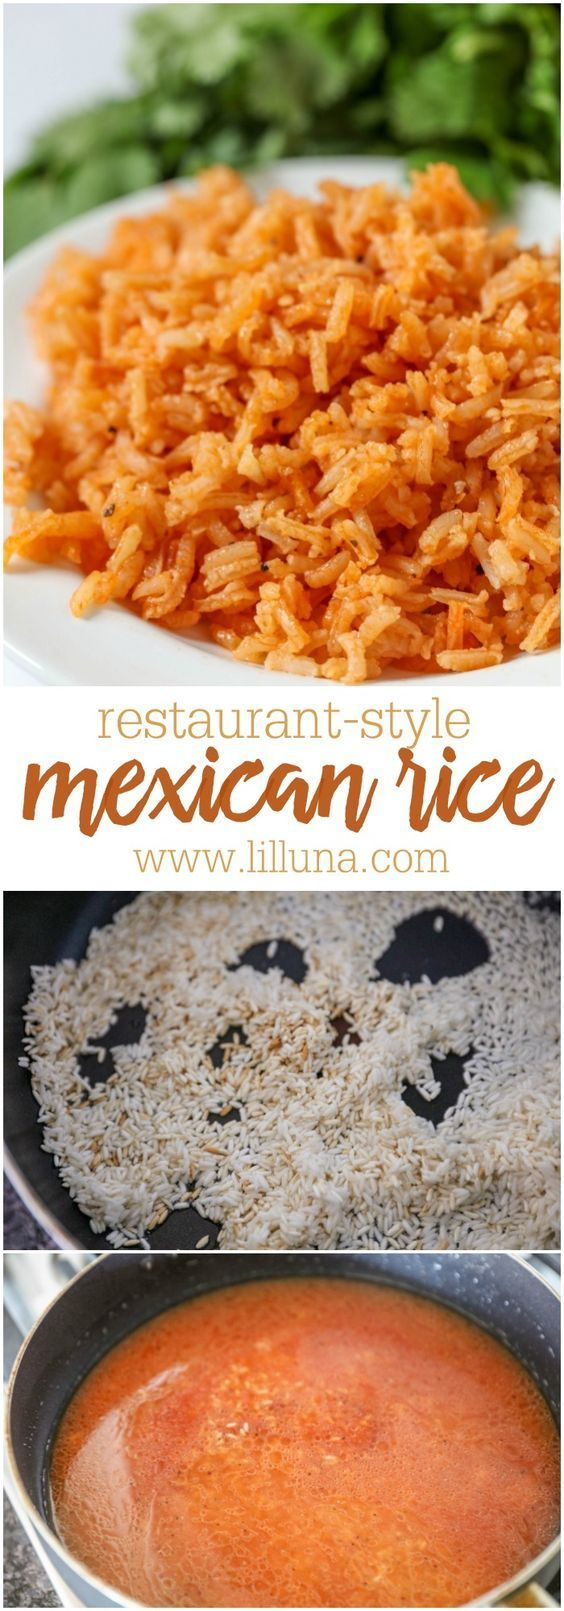 Mexican christmas food - Best 20 Mexican Christmas Food Ideas On Pinterest Mexican Christmas Traditions Hot Chocolate Party And Mexican Christmas